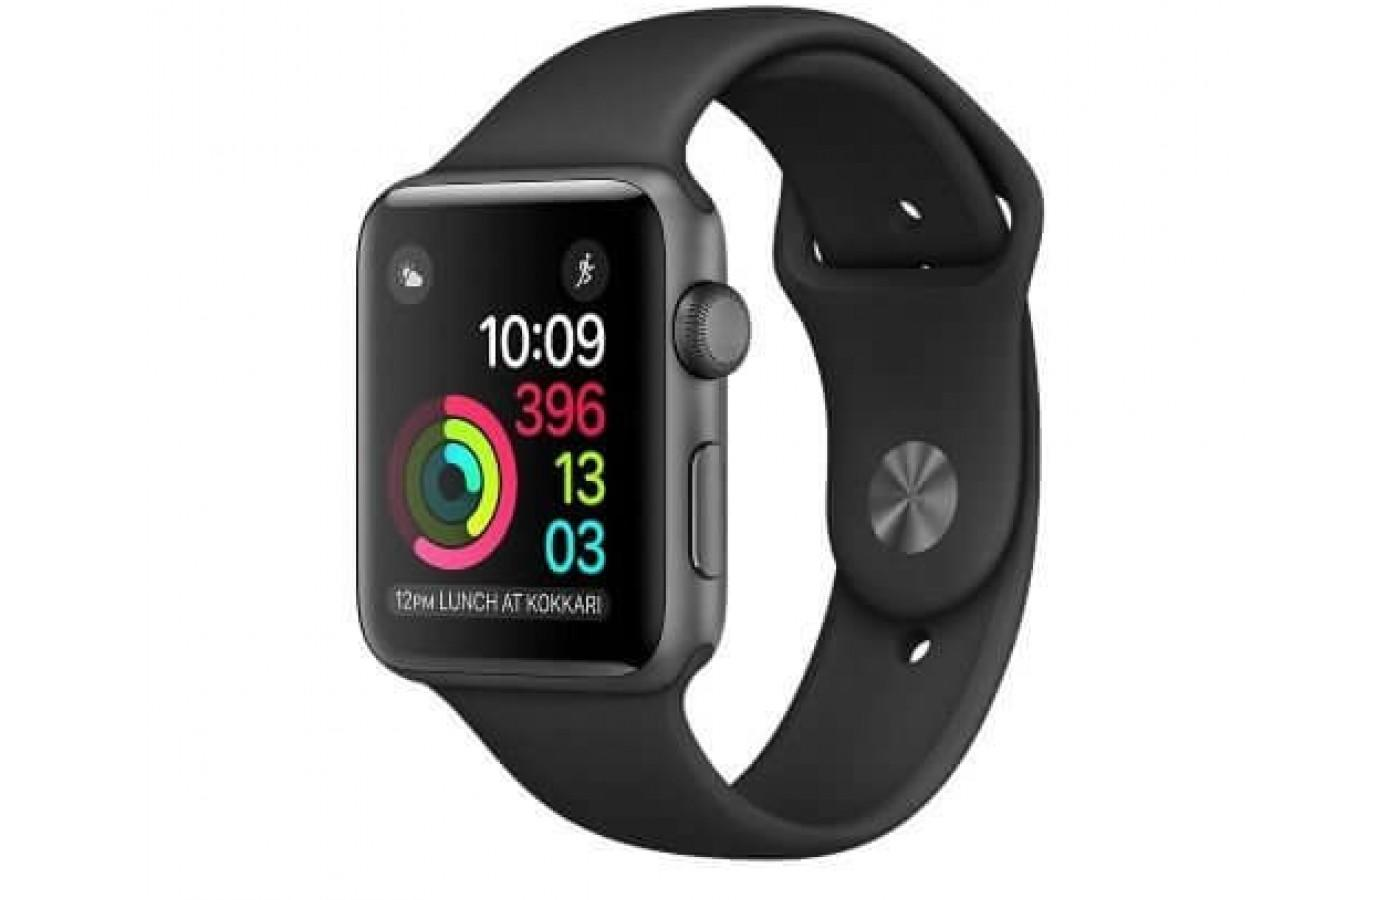 the Apple Watch Series 2 is the latest smartwatch and fitness tracker from Apple